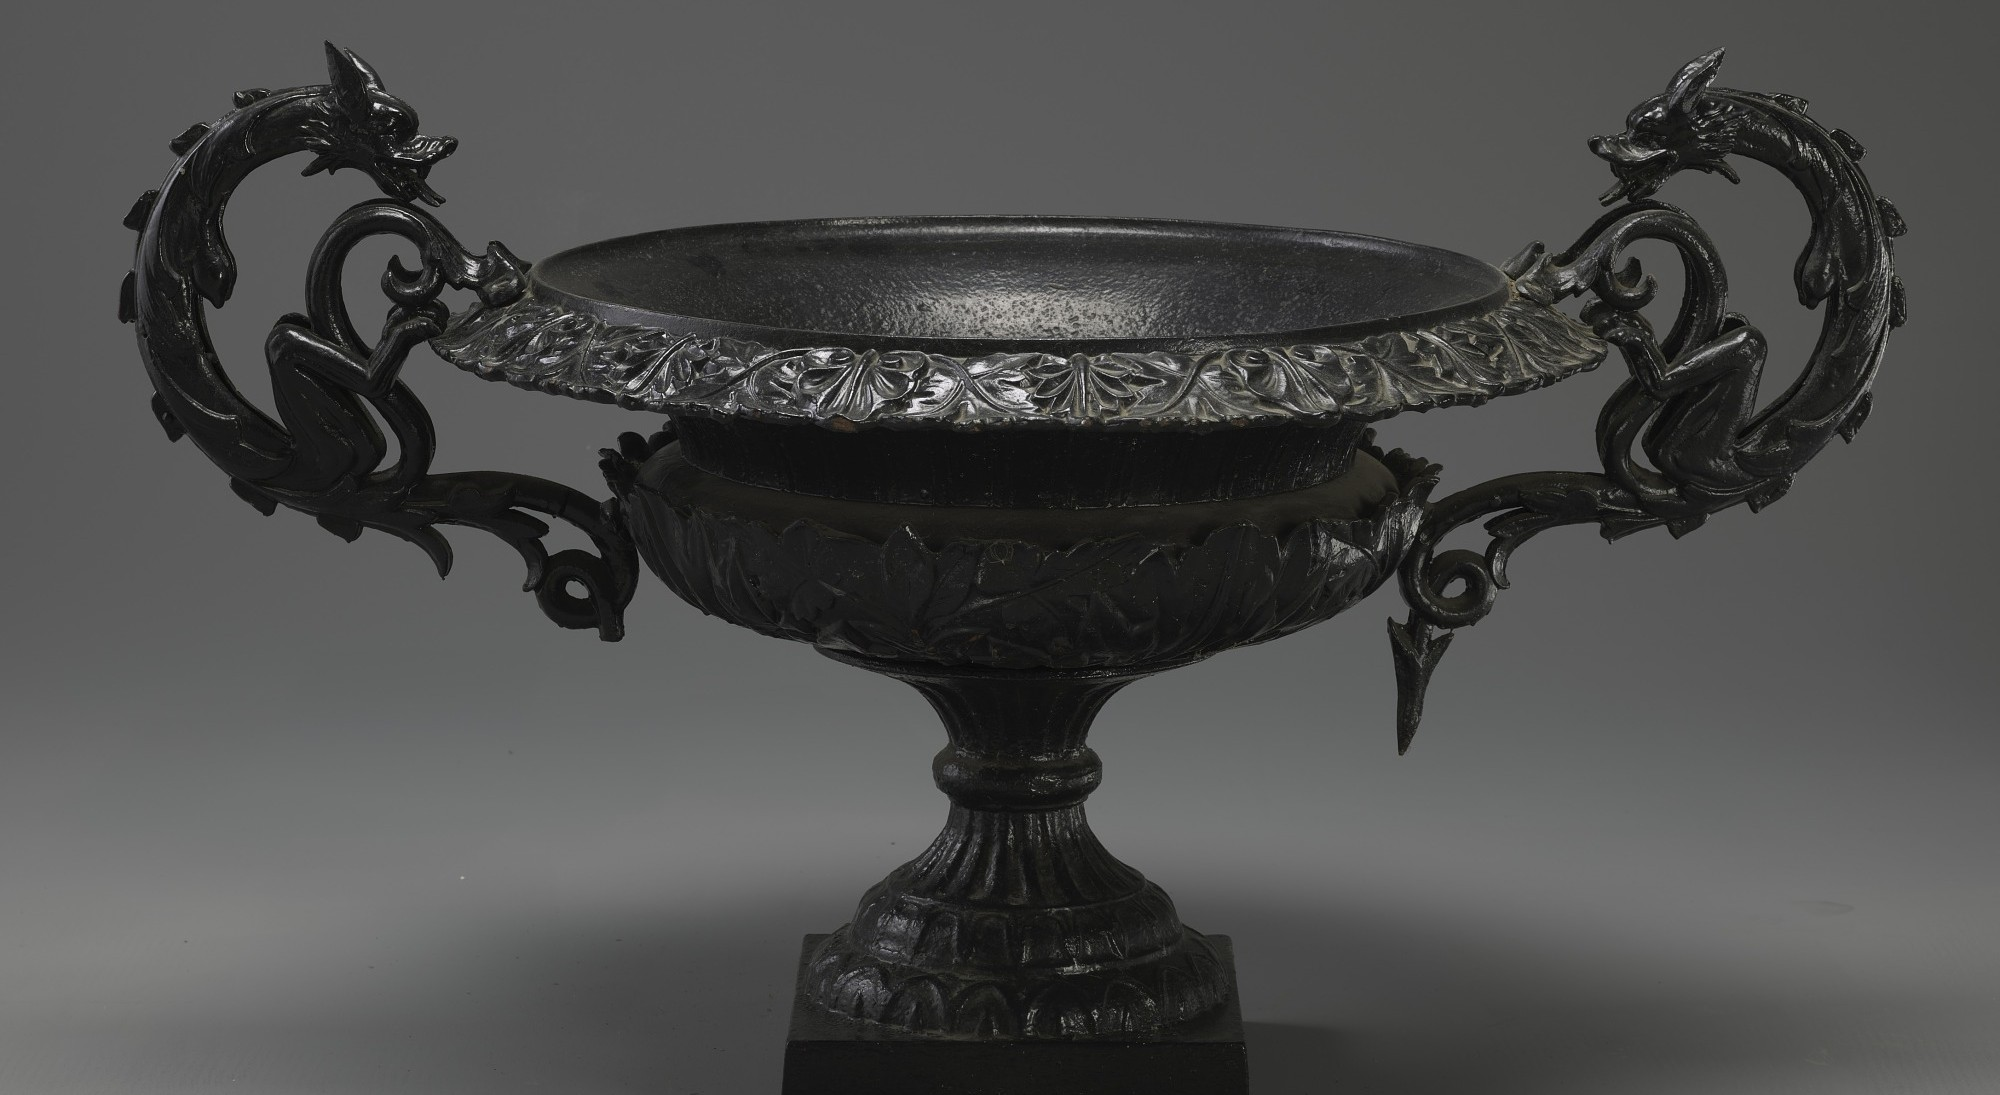 Cast iron urn with dragon detail